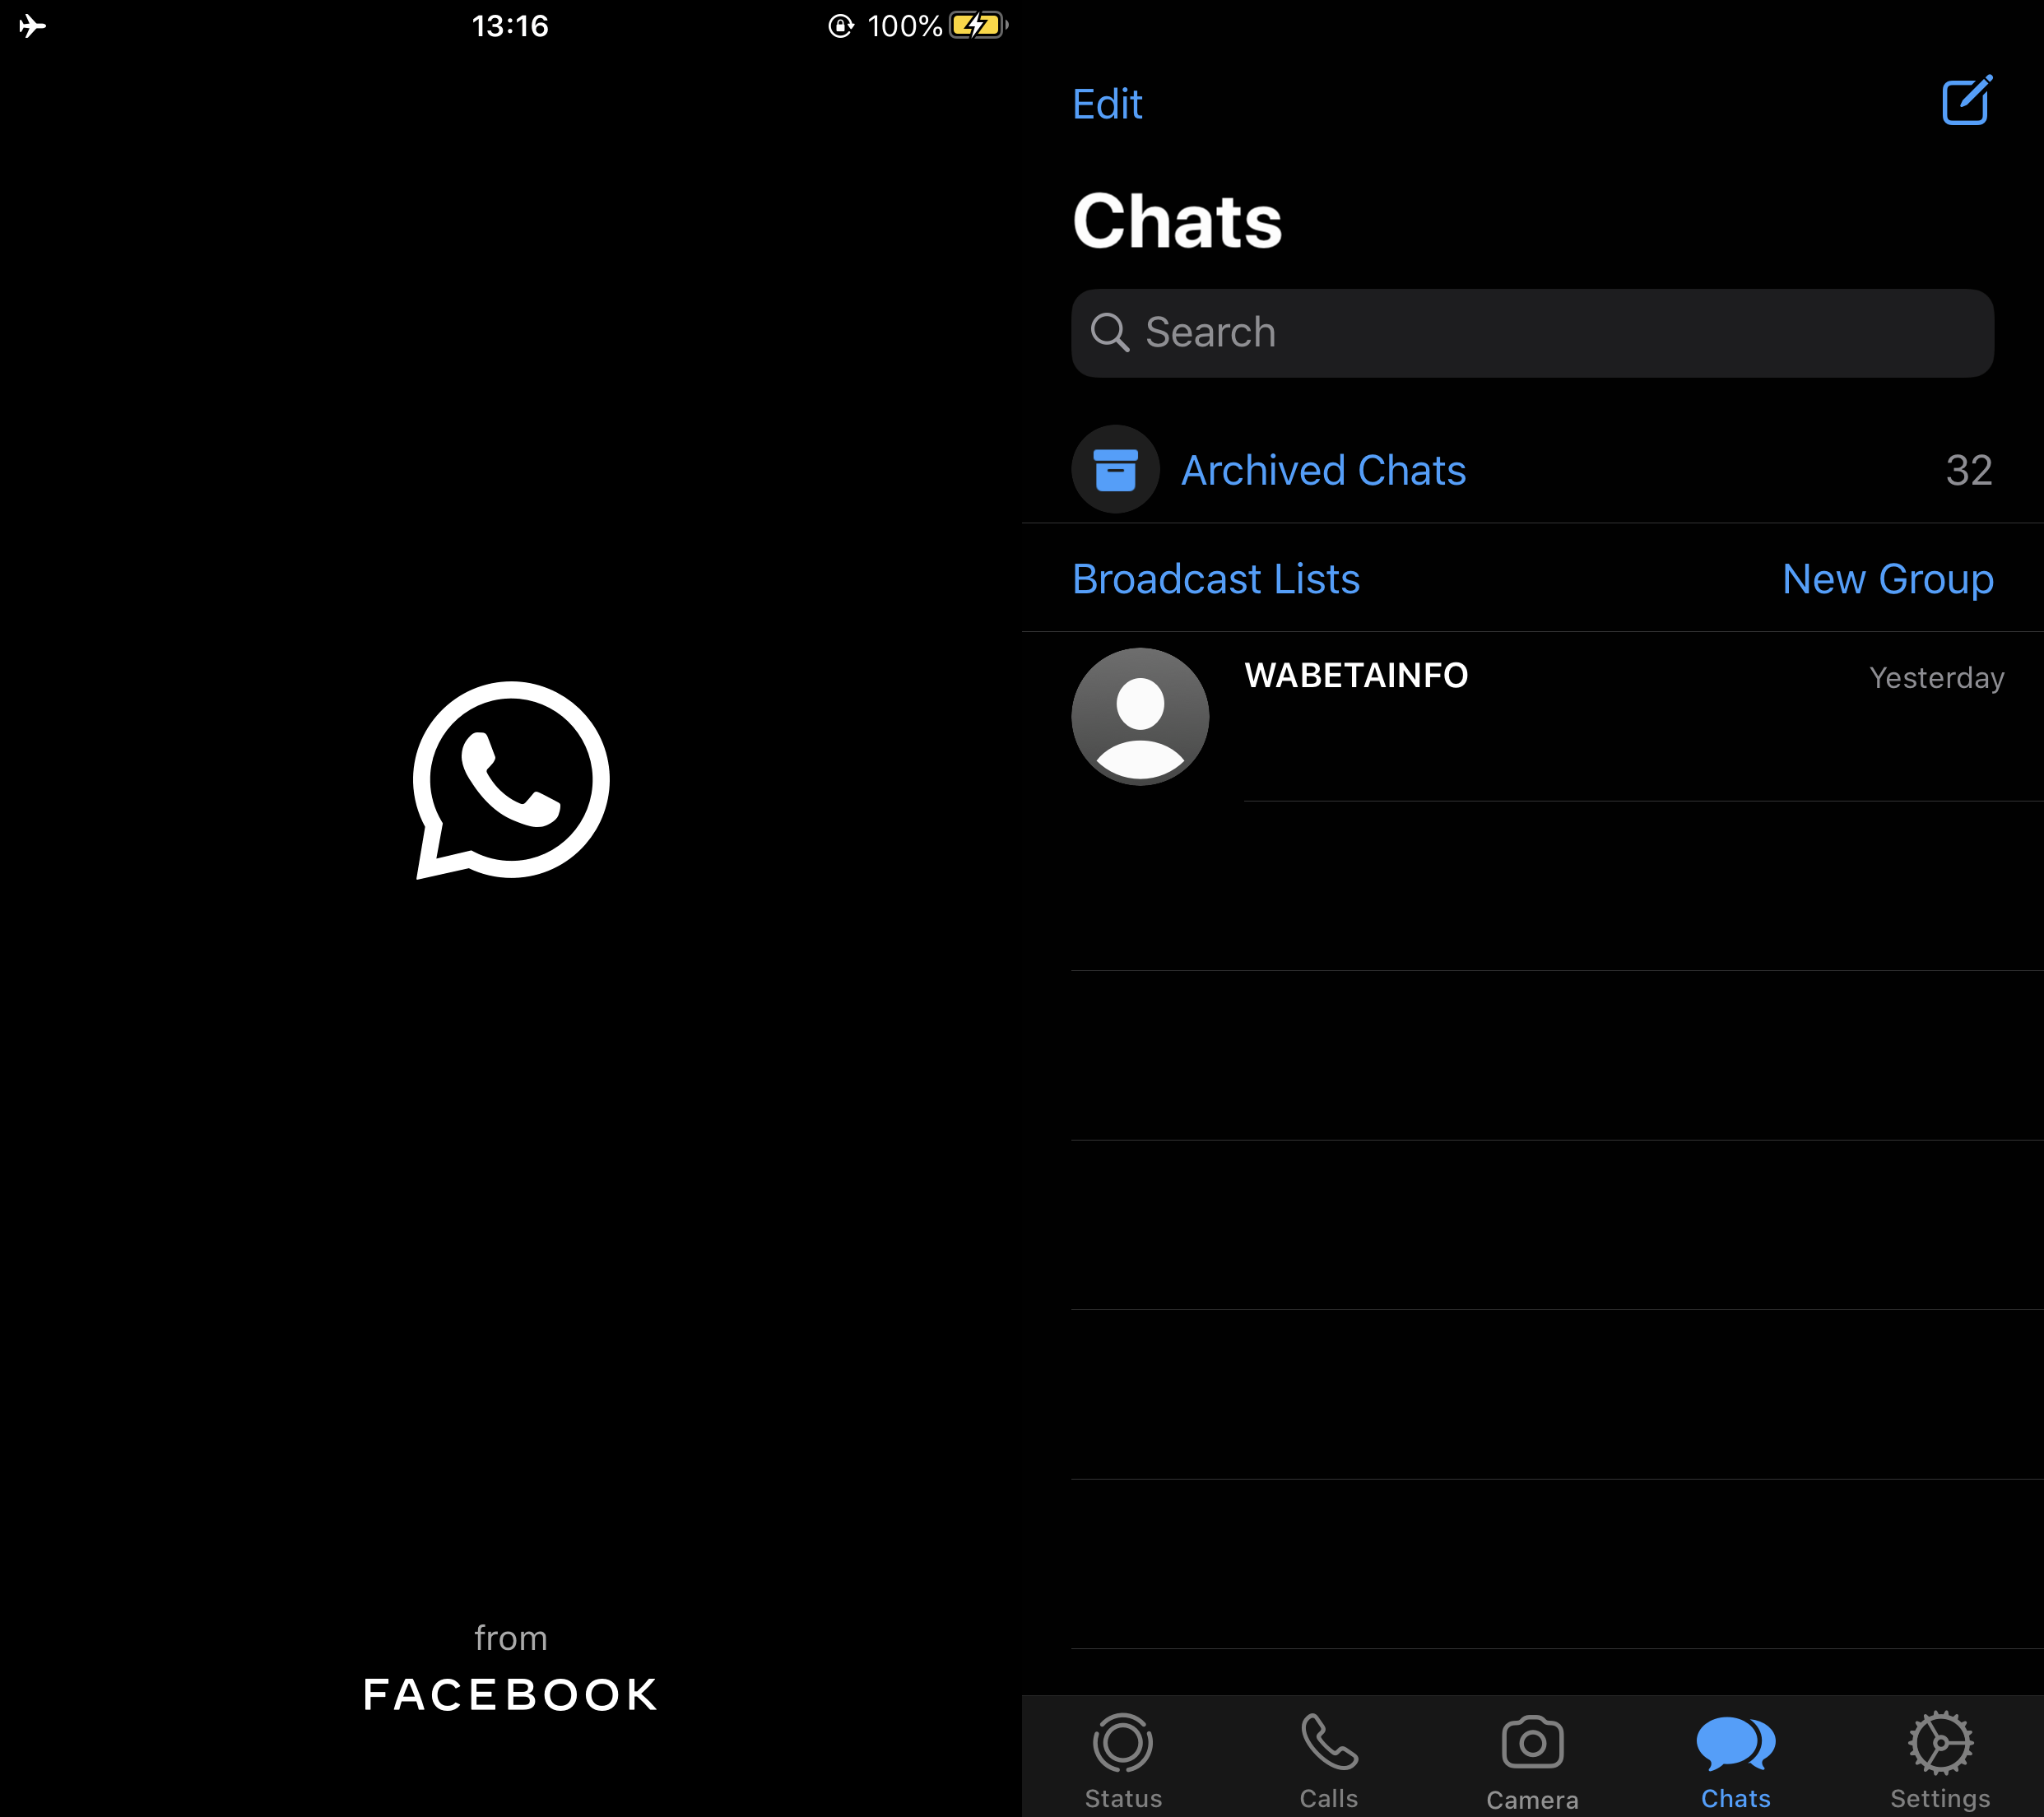 WhatsApp's latest iOS beta update brings dark mode, advanced search